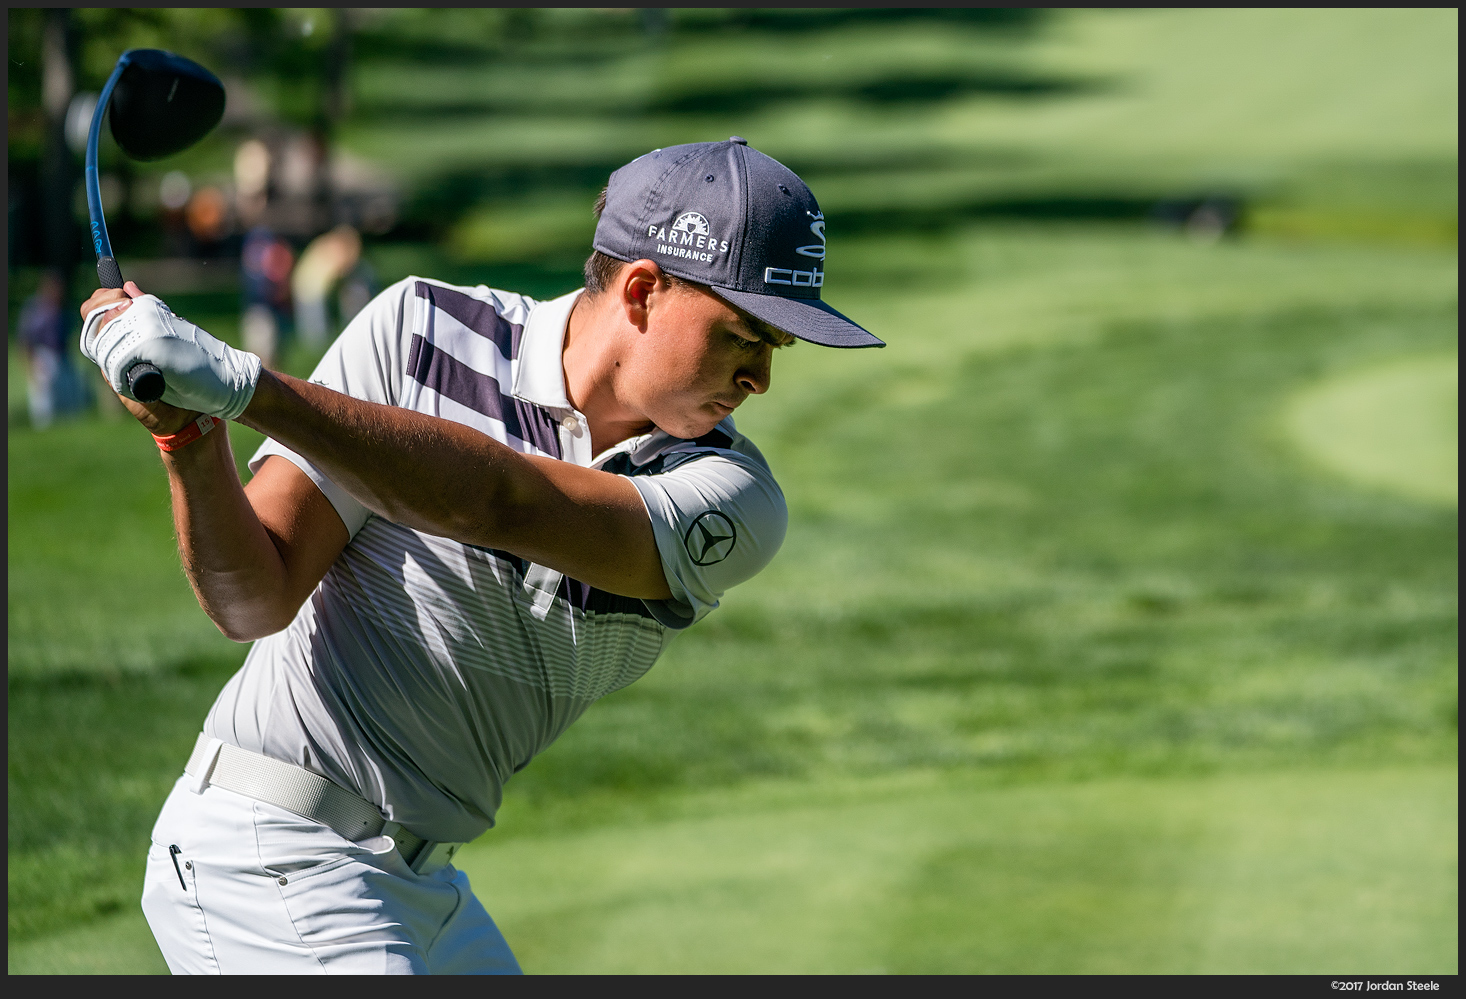 Ricky Fowler - Sony A9 with Sony 70-200mm f/2.8 GM @ 90mm, f/2.8